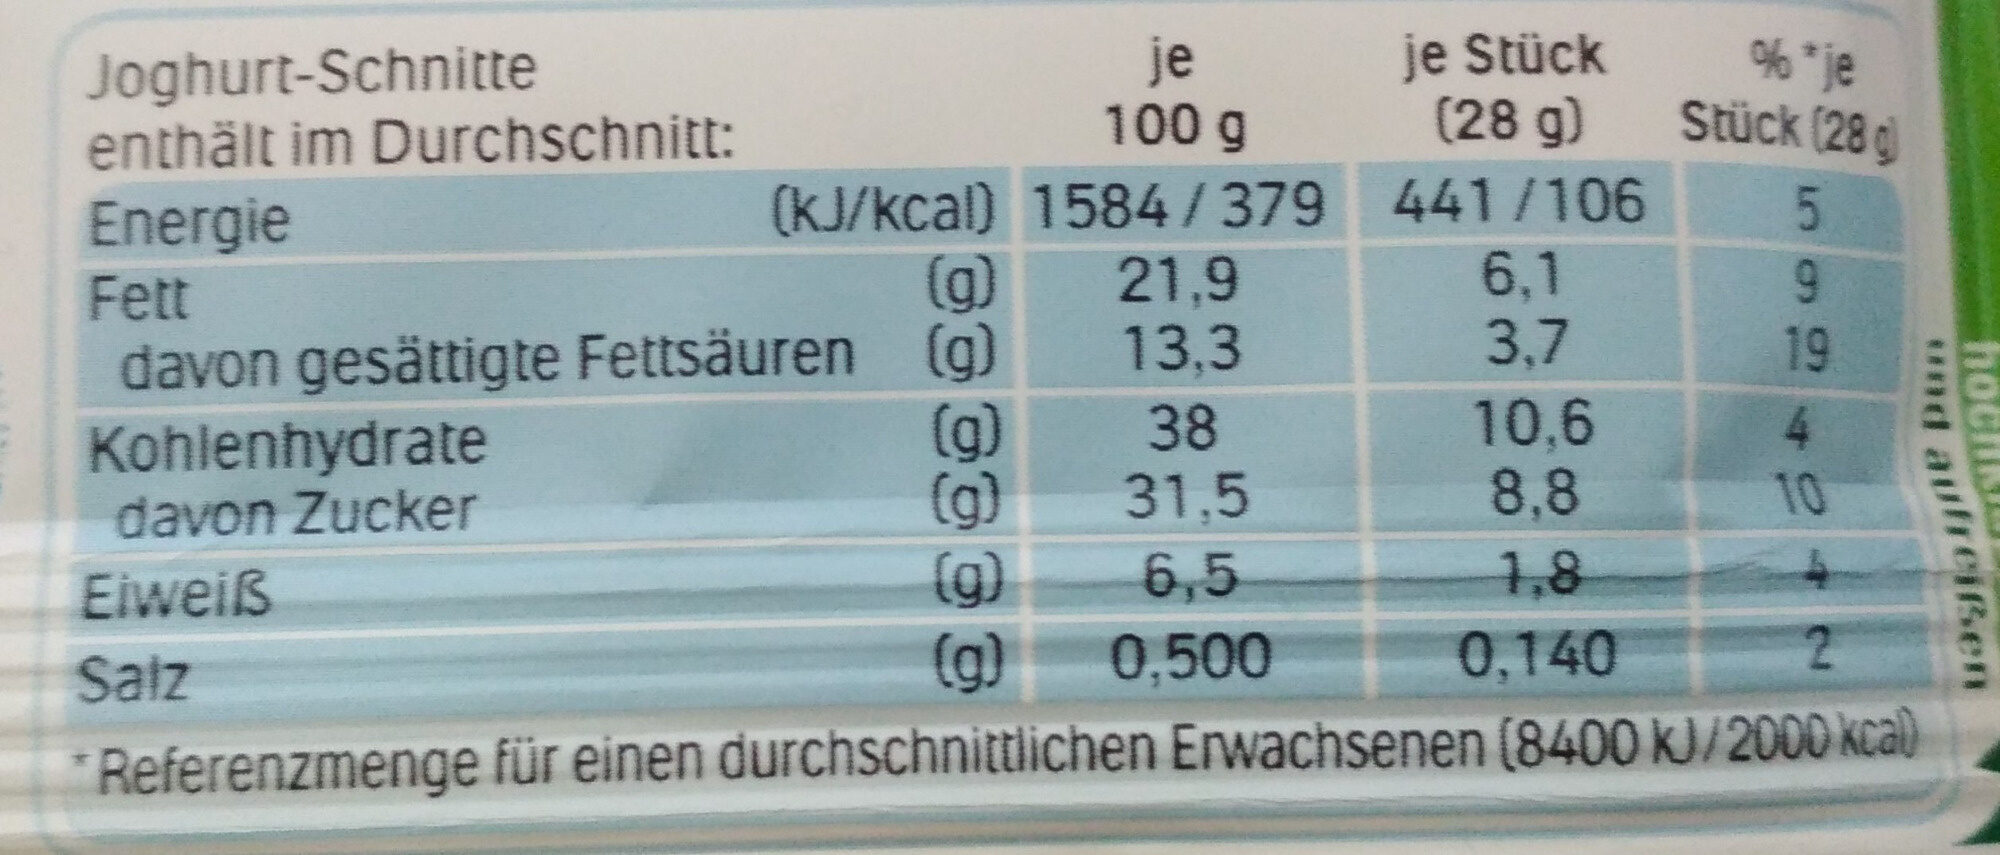 Joghurt-Schnitte Heidelbeere & Cranberry - Nutrition facts